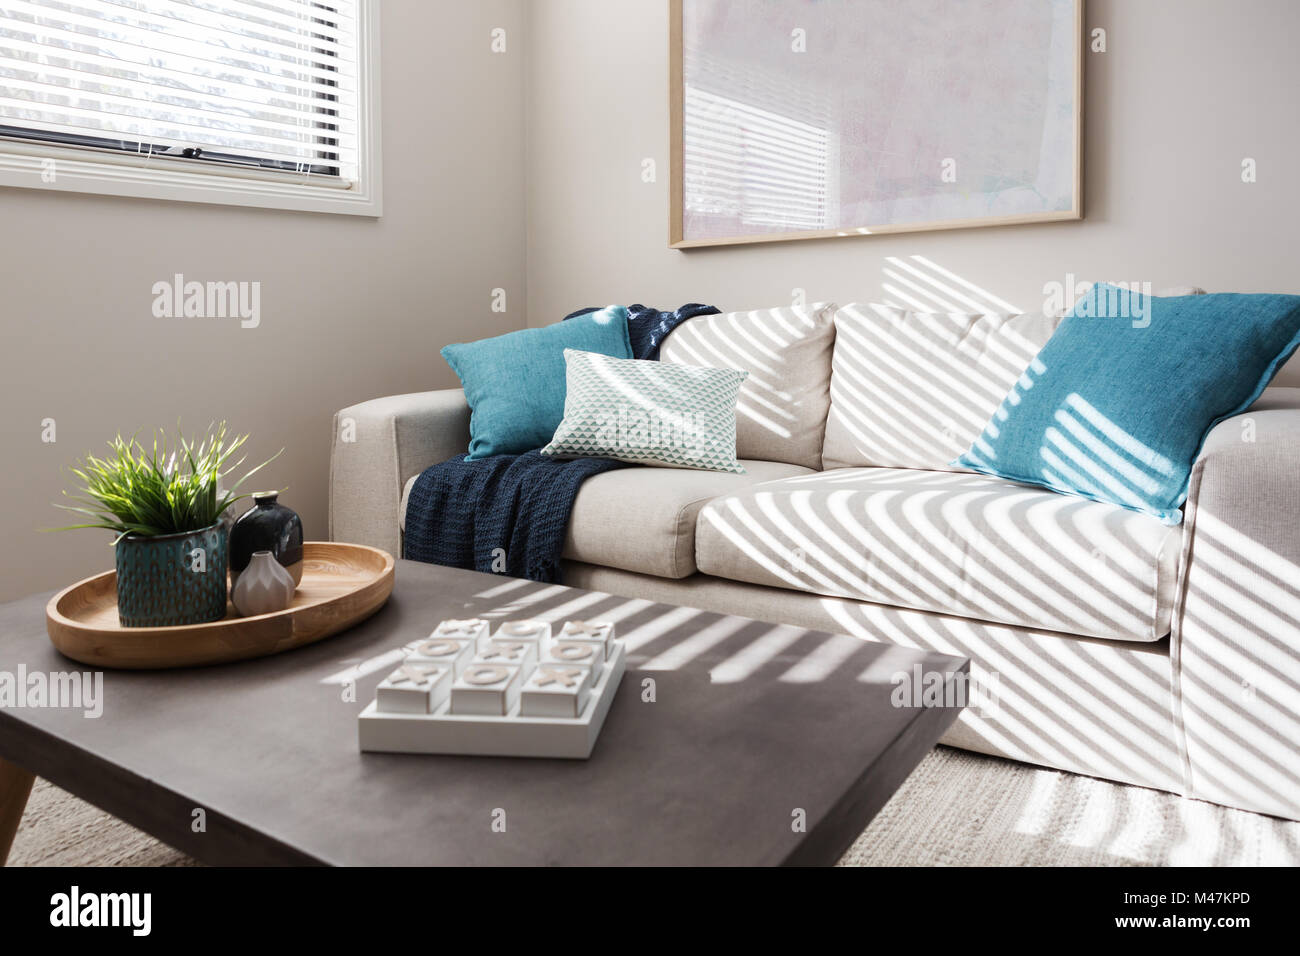 Neutral living room with textured fabrics and teal accents - Stock Image